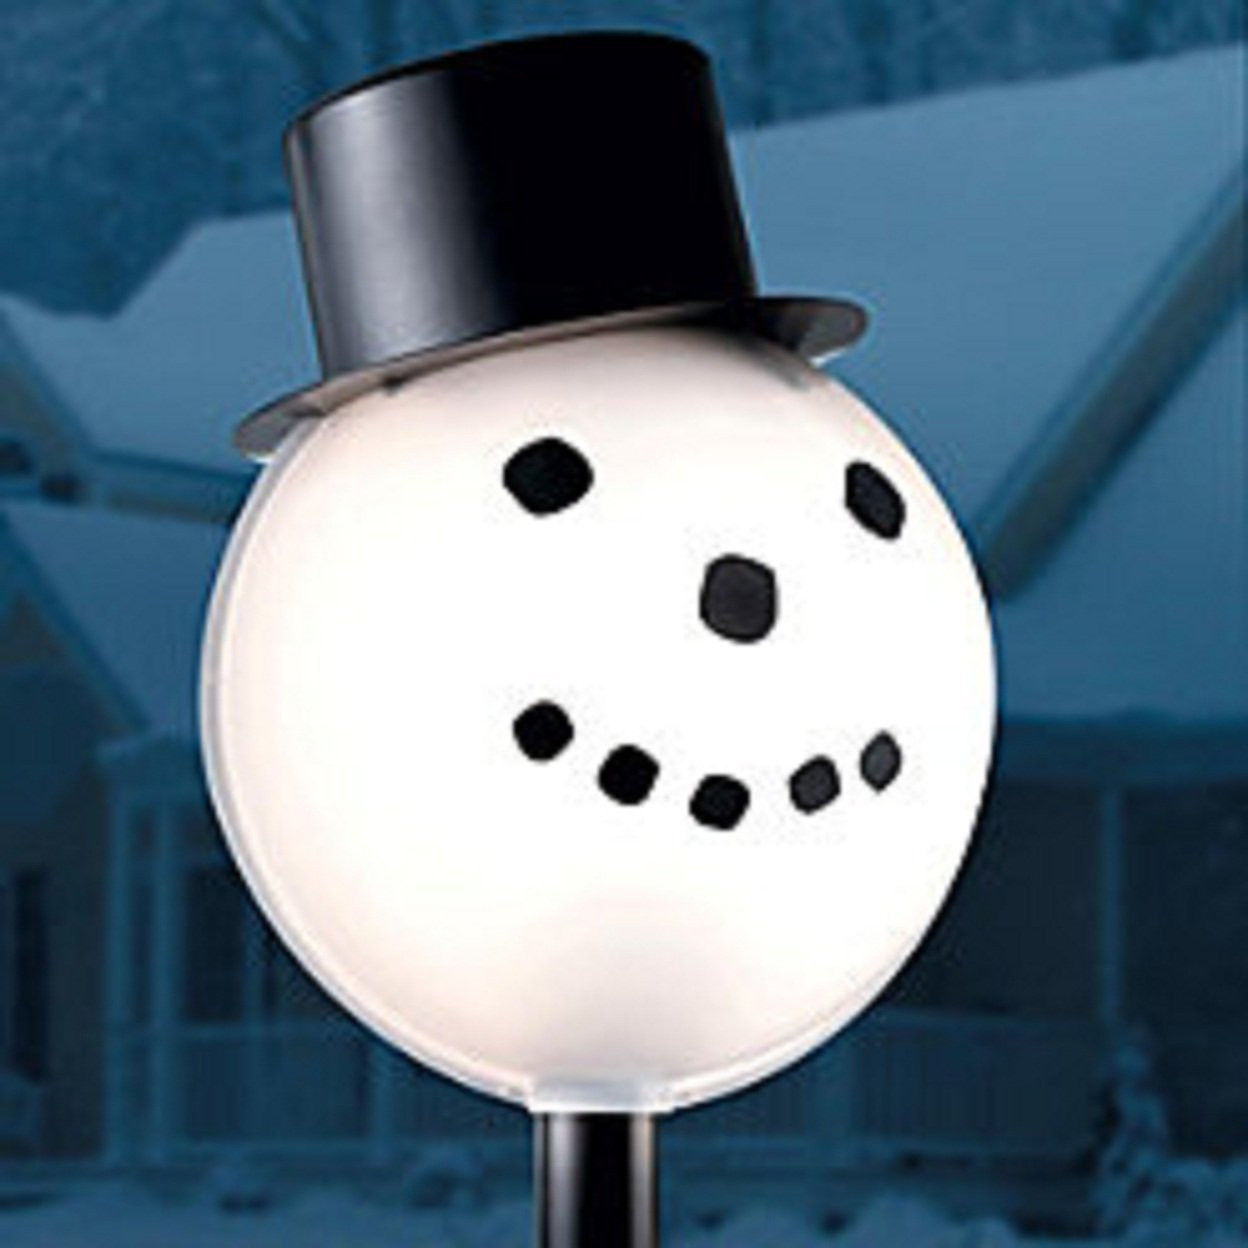 Branded Christmas Outdoor Porch Light Cover Festive Snowman Holiday Decoration NEW. Sold by sunnyshop an eBay Marketplace seller. $ $ Trimming Traditions 6' Lighted Inflatable Snowman. Sold by Sears. $ $ National Tree Company 50 Bulb Outdoor Soft White C7 Diamond Cap LED w/ Plastic Cover Illuminate Light Set.